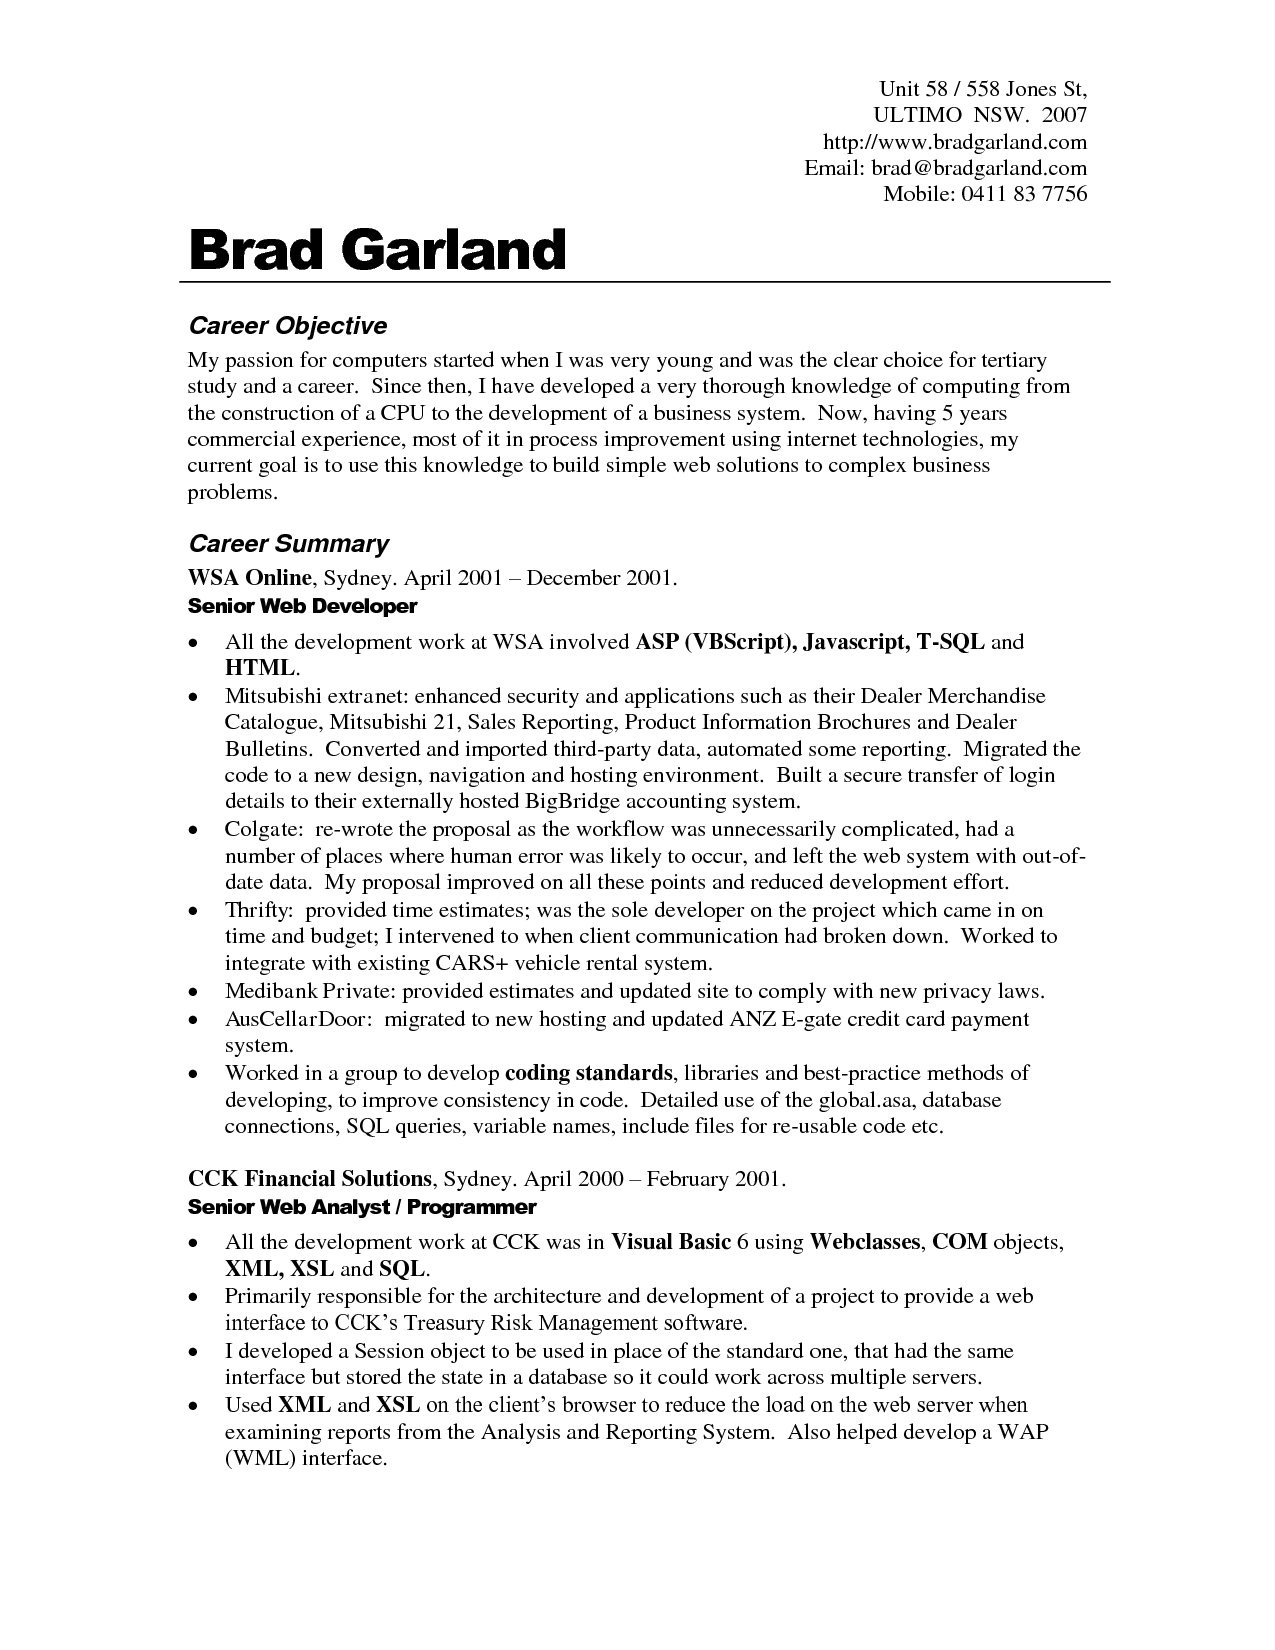 Good Resumes Examples Resume Objectives Examples Best Templateresume Objective Examples